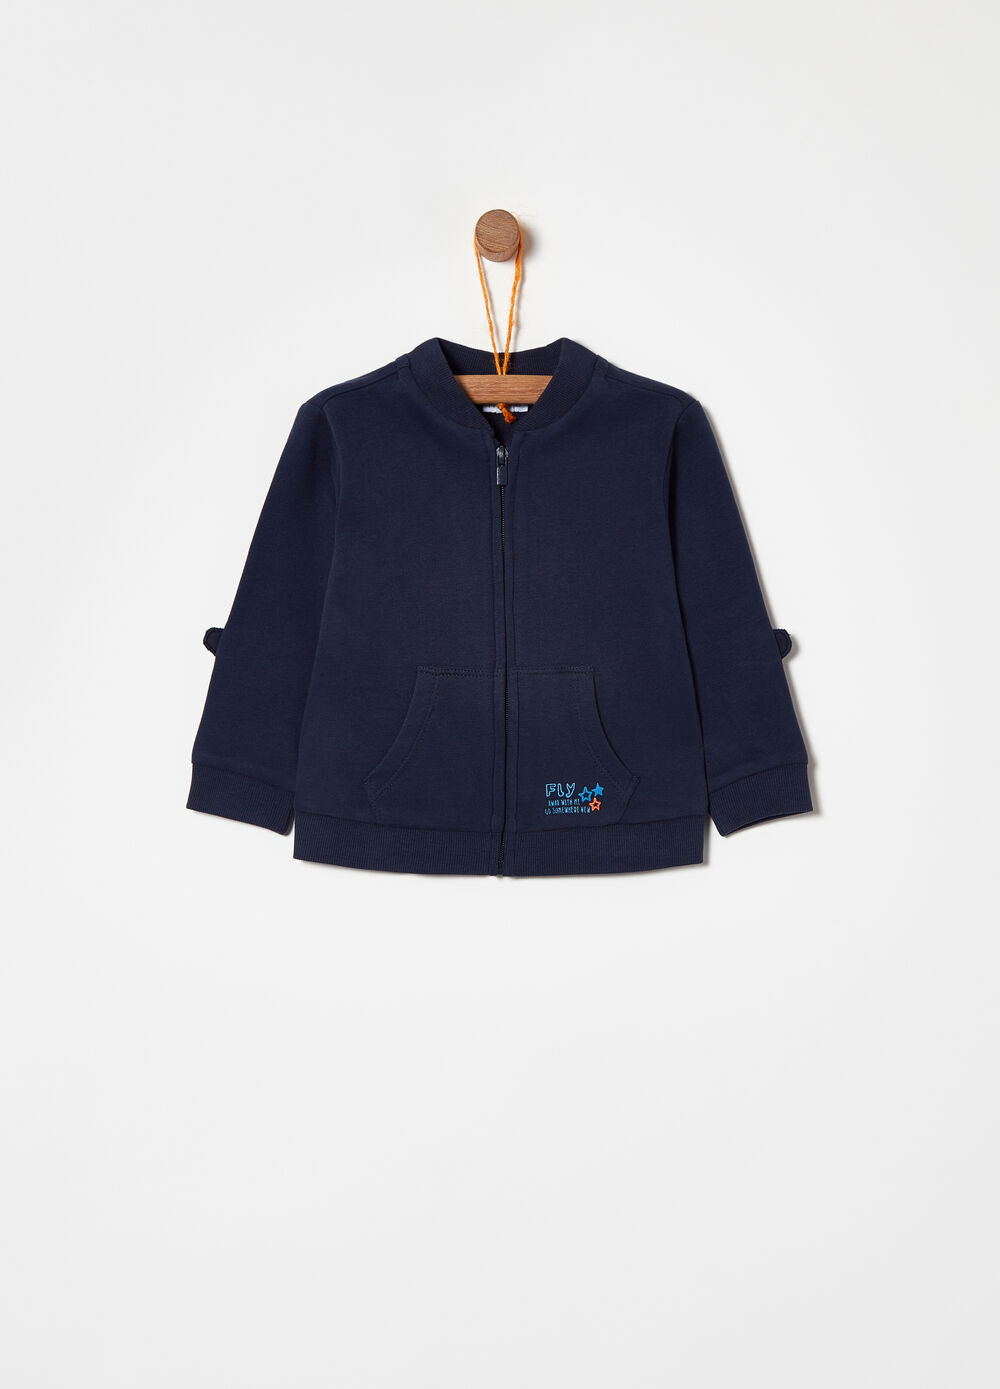 100% cotton sweatshirt with patch and print